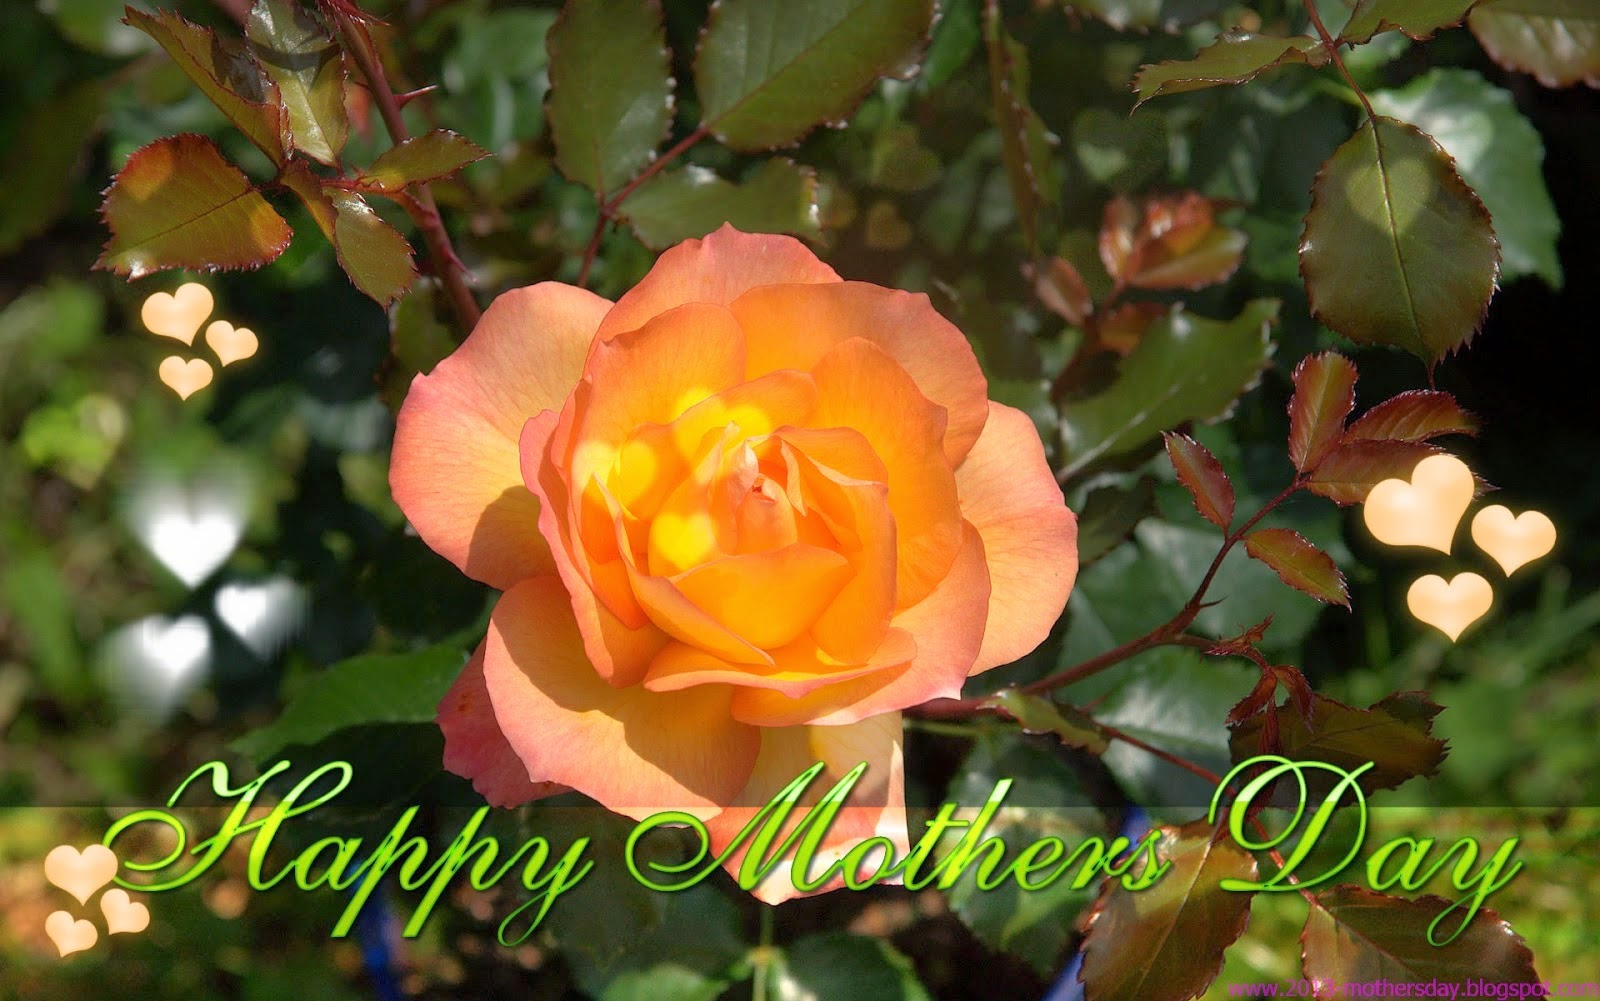 HD Desktop Wallpapers For Mothers Day 2014